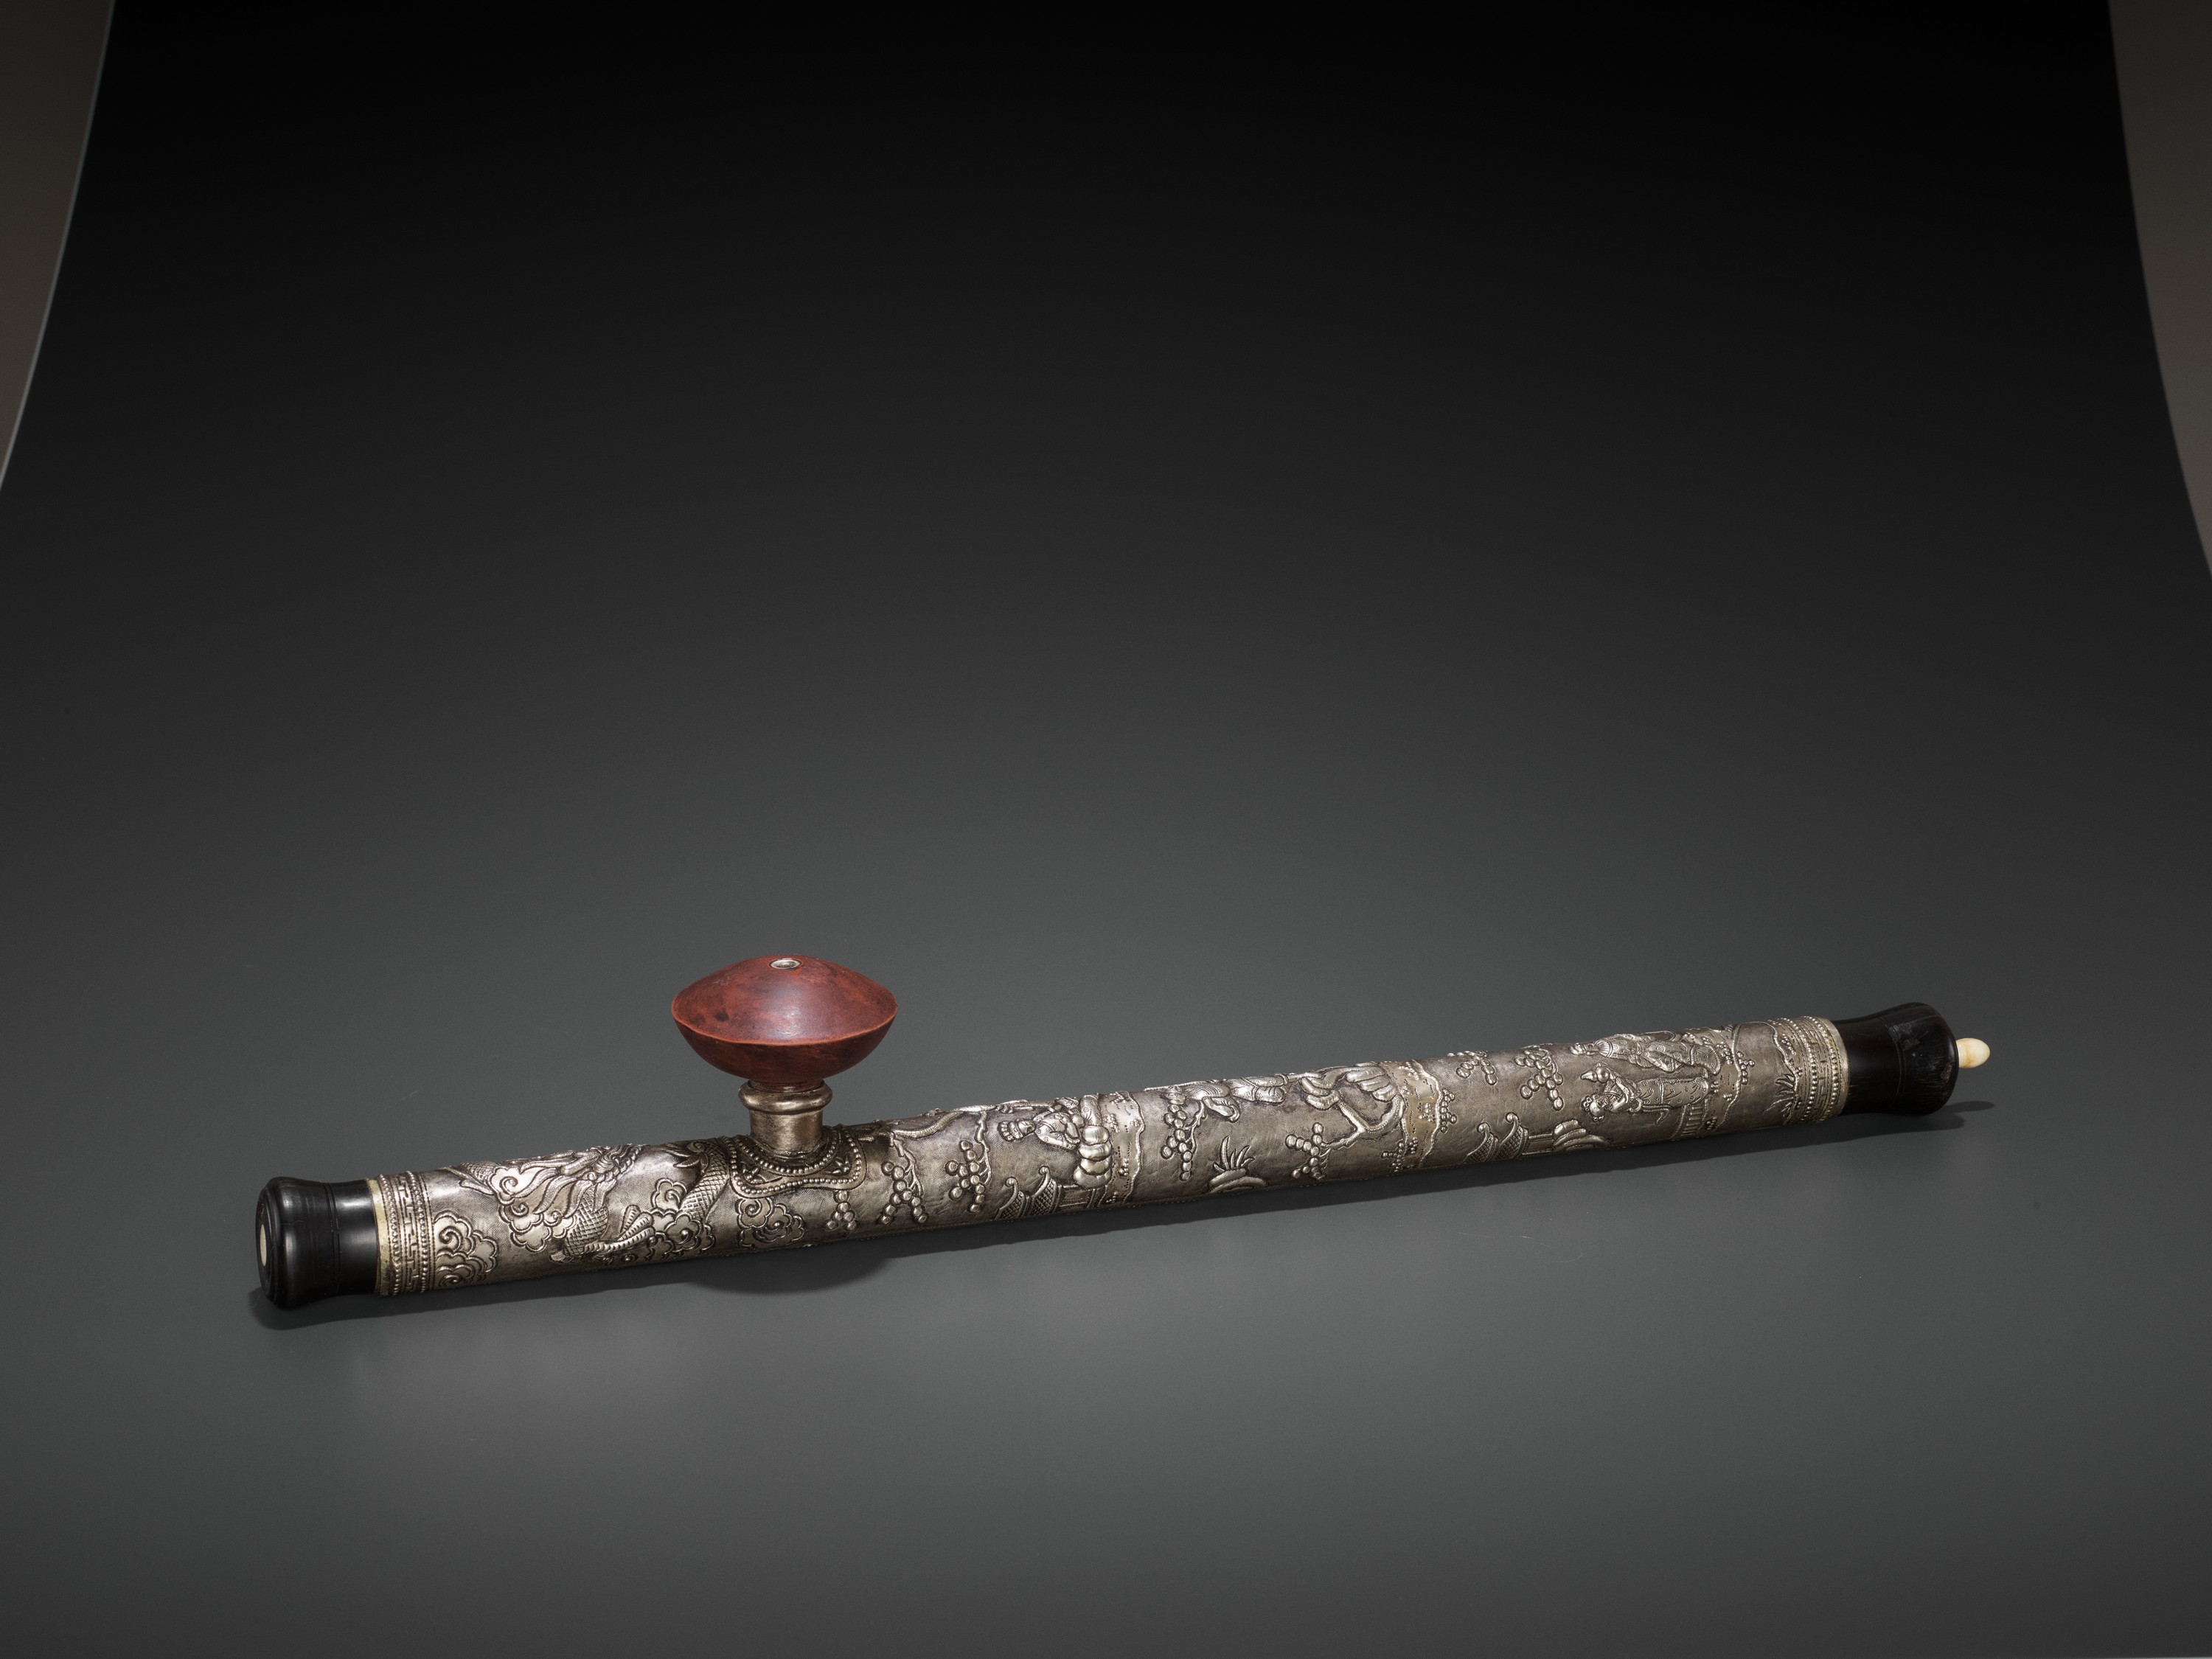 A HARDWOOD OPIUM PIPE WITH BONE, SILVER AND YIXING CERAMIC FITTINGS, LATE QING TO REPUBLIC